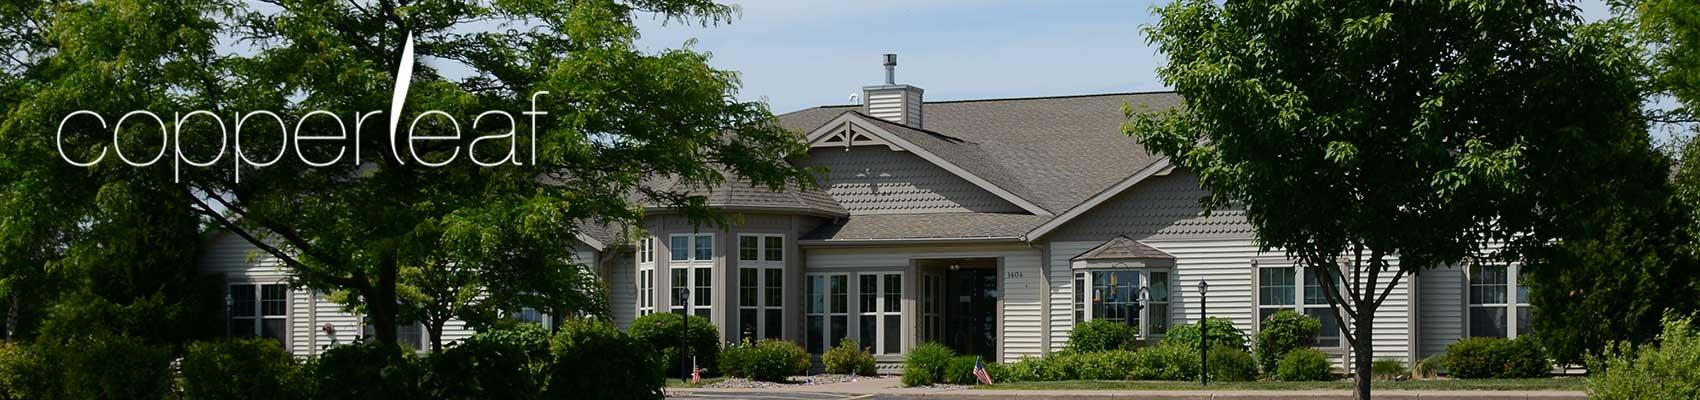 assisted living facilities in Schofield Wisconsin Marathon County